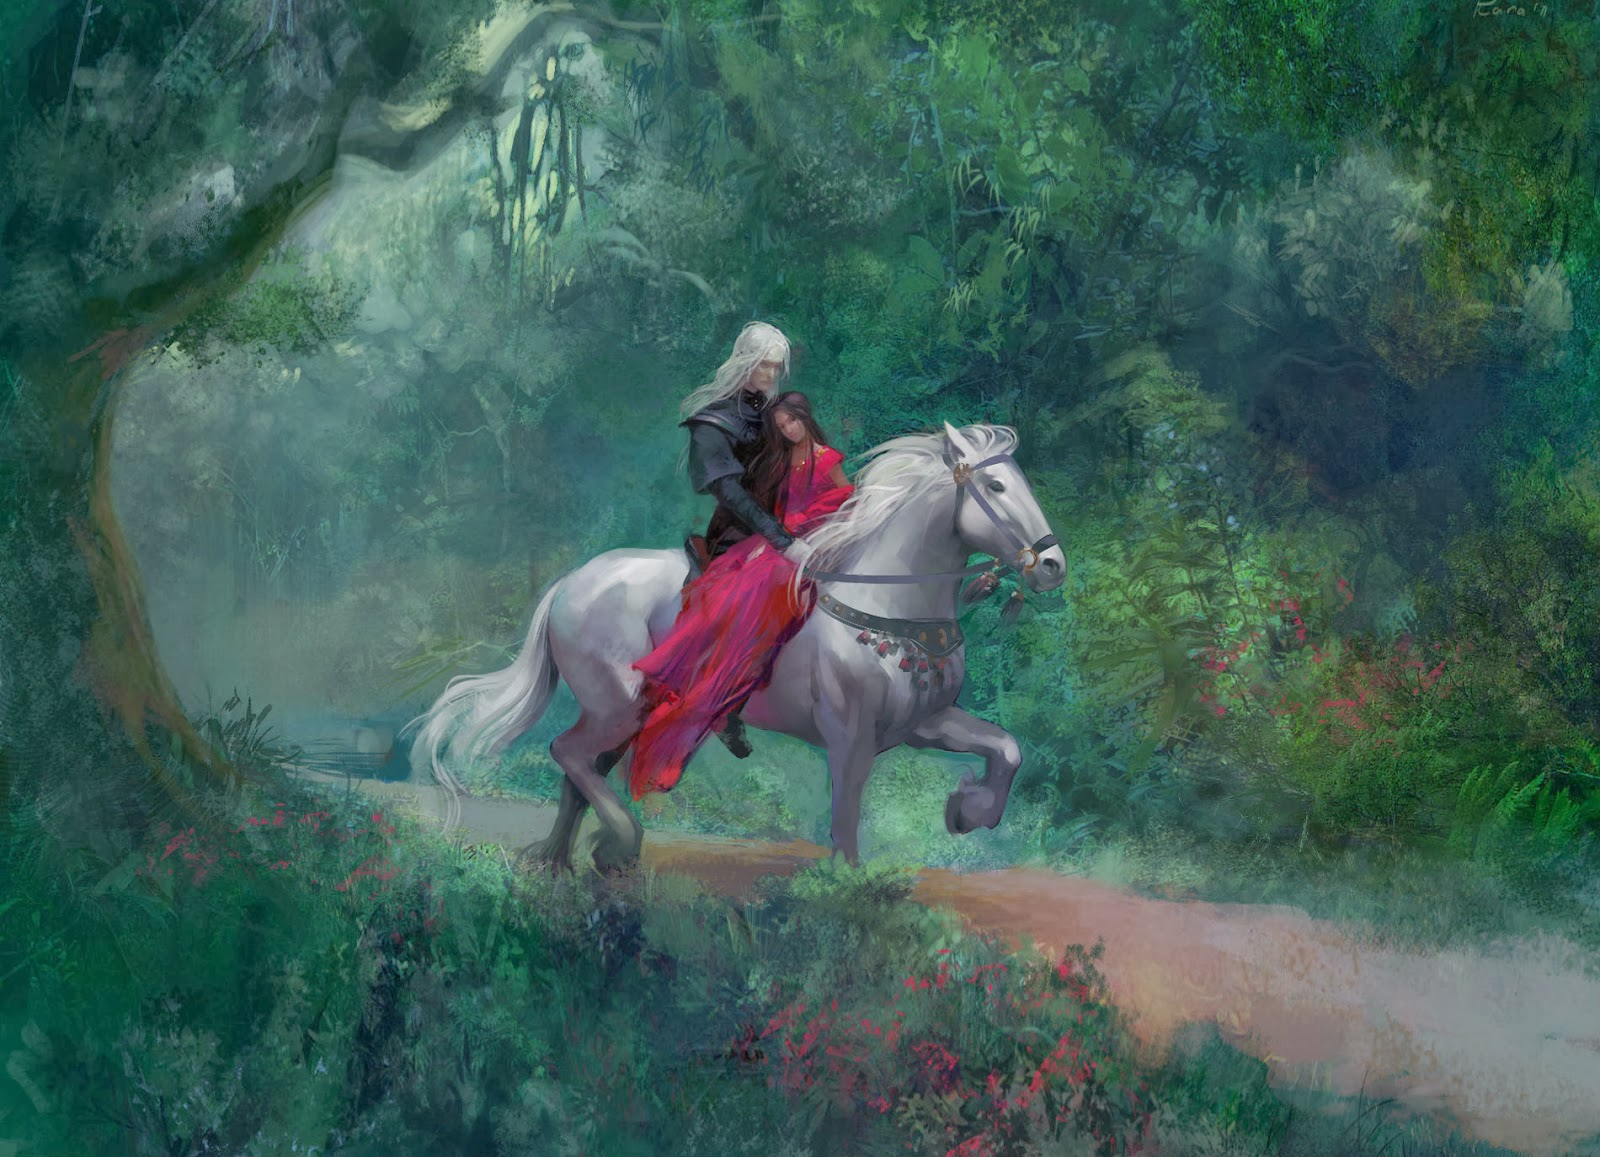 Beautiful-lovers-riding-horse-through-forest-painting-HD.jpg